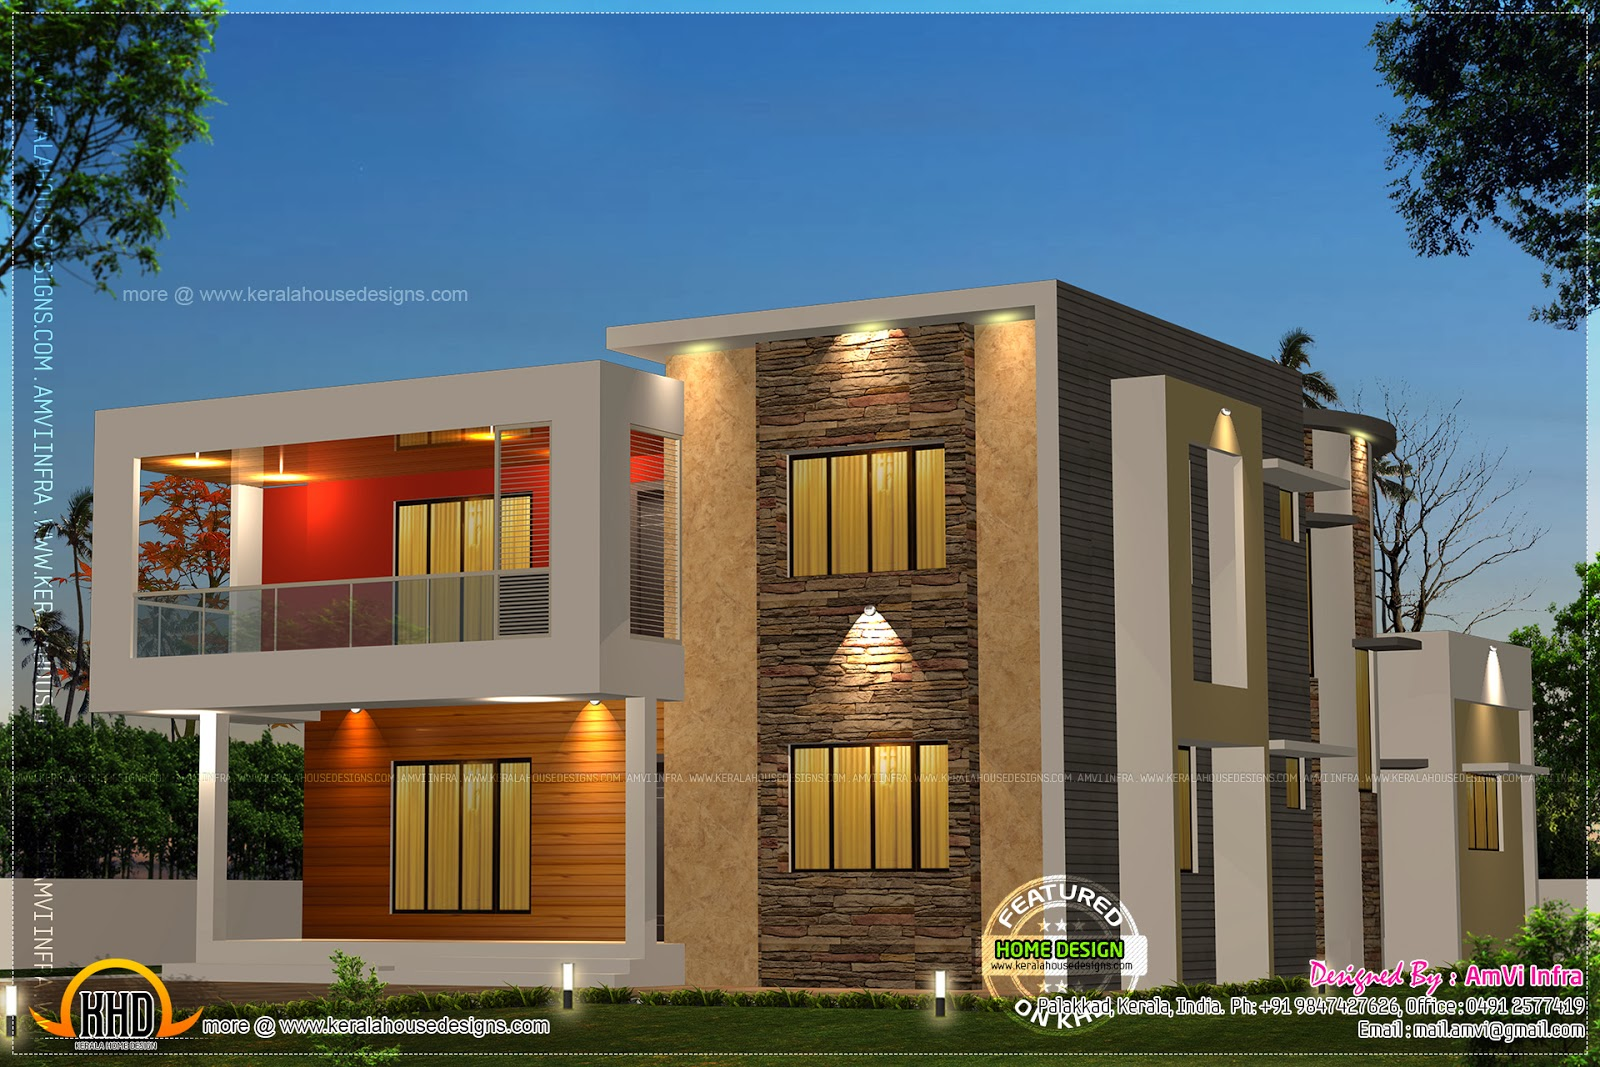 5 bedroom contemporary house with plan kerala home design and floor plans - Contemporary house designs ...